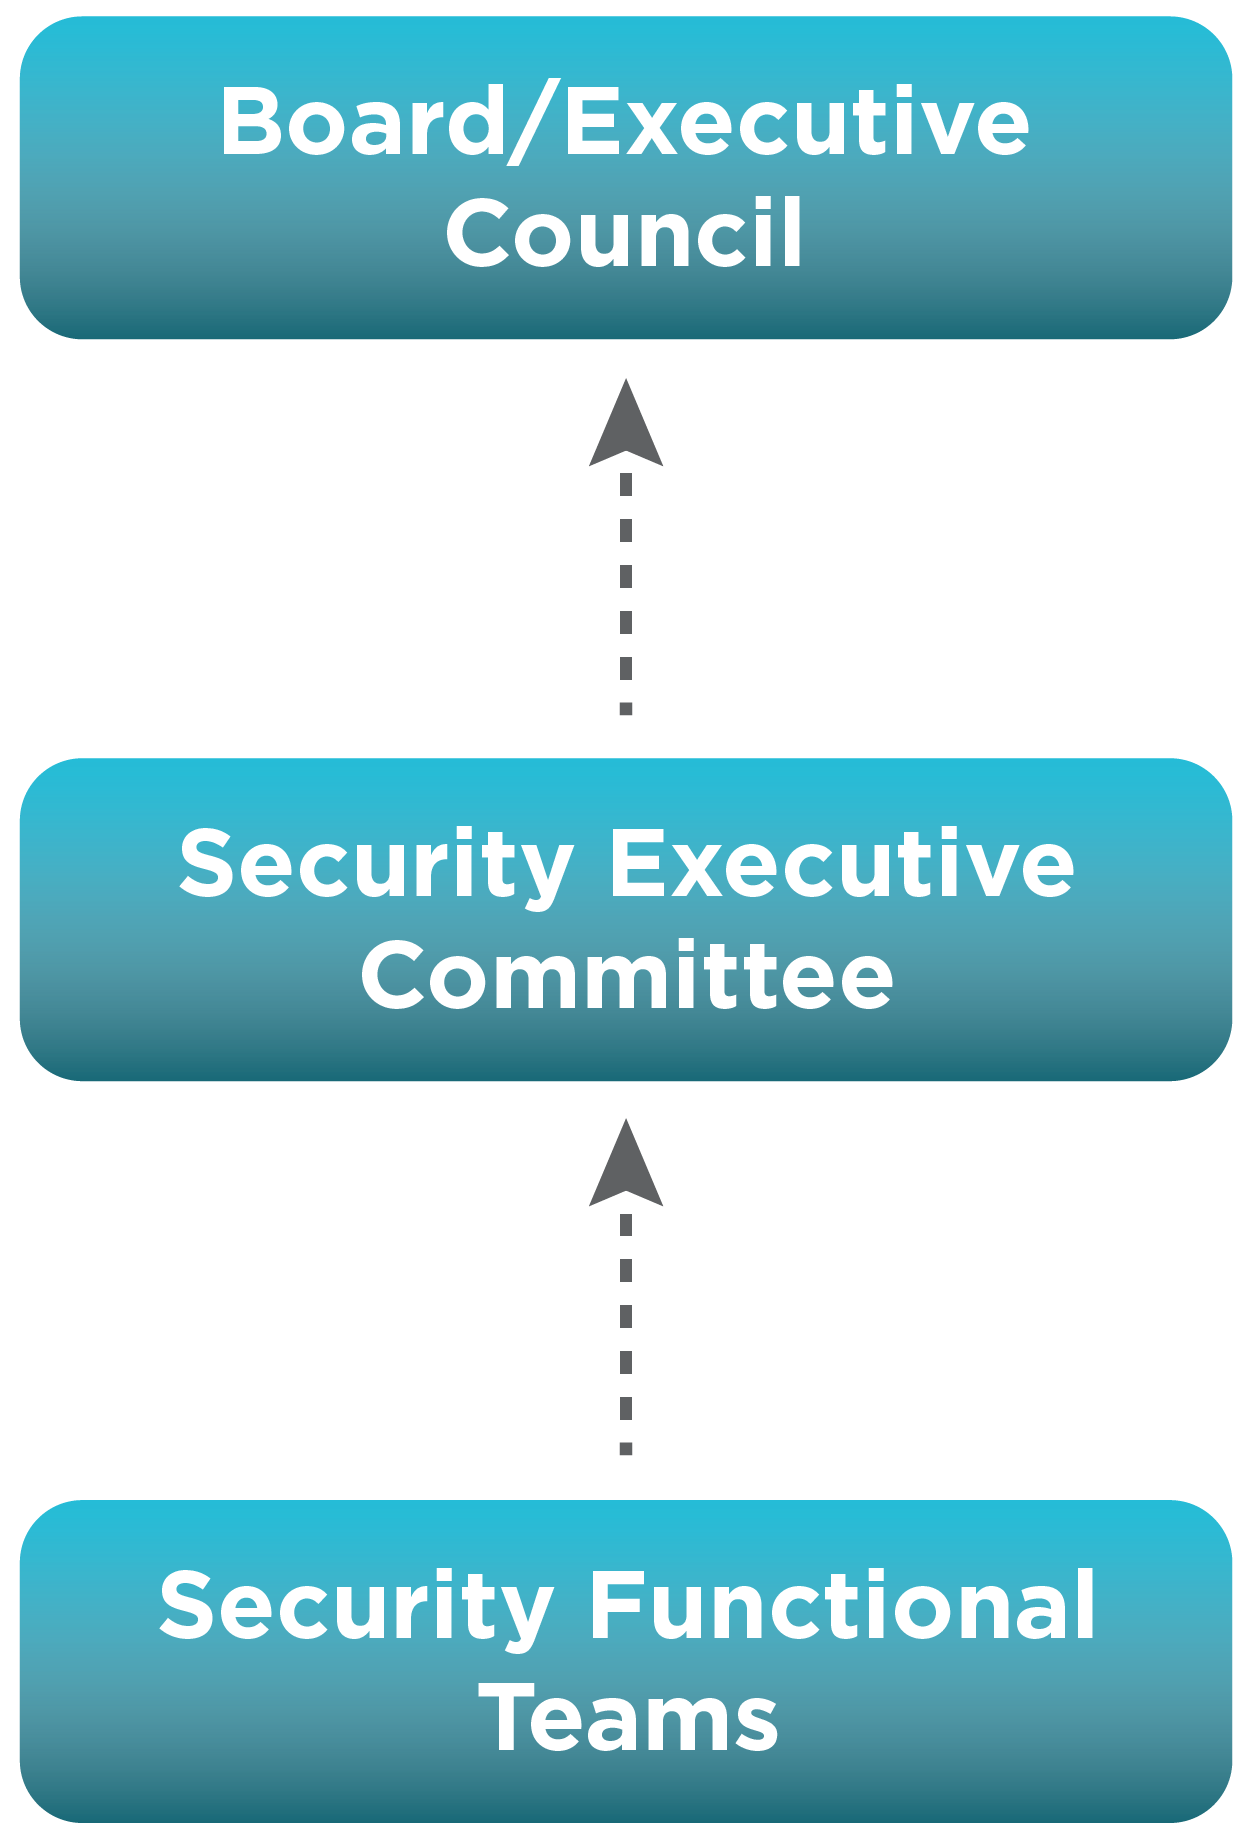 Security Executive Committee